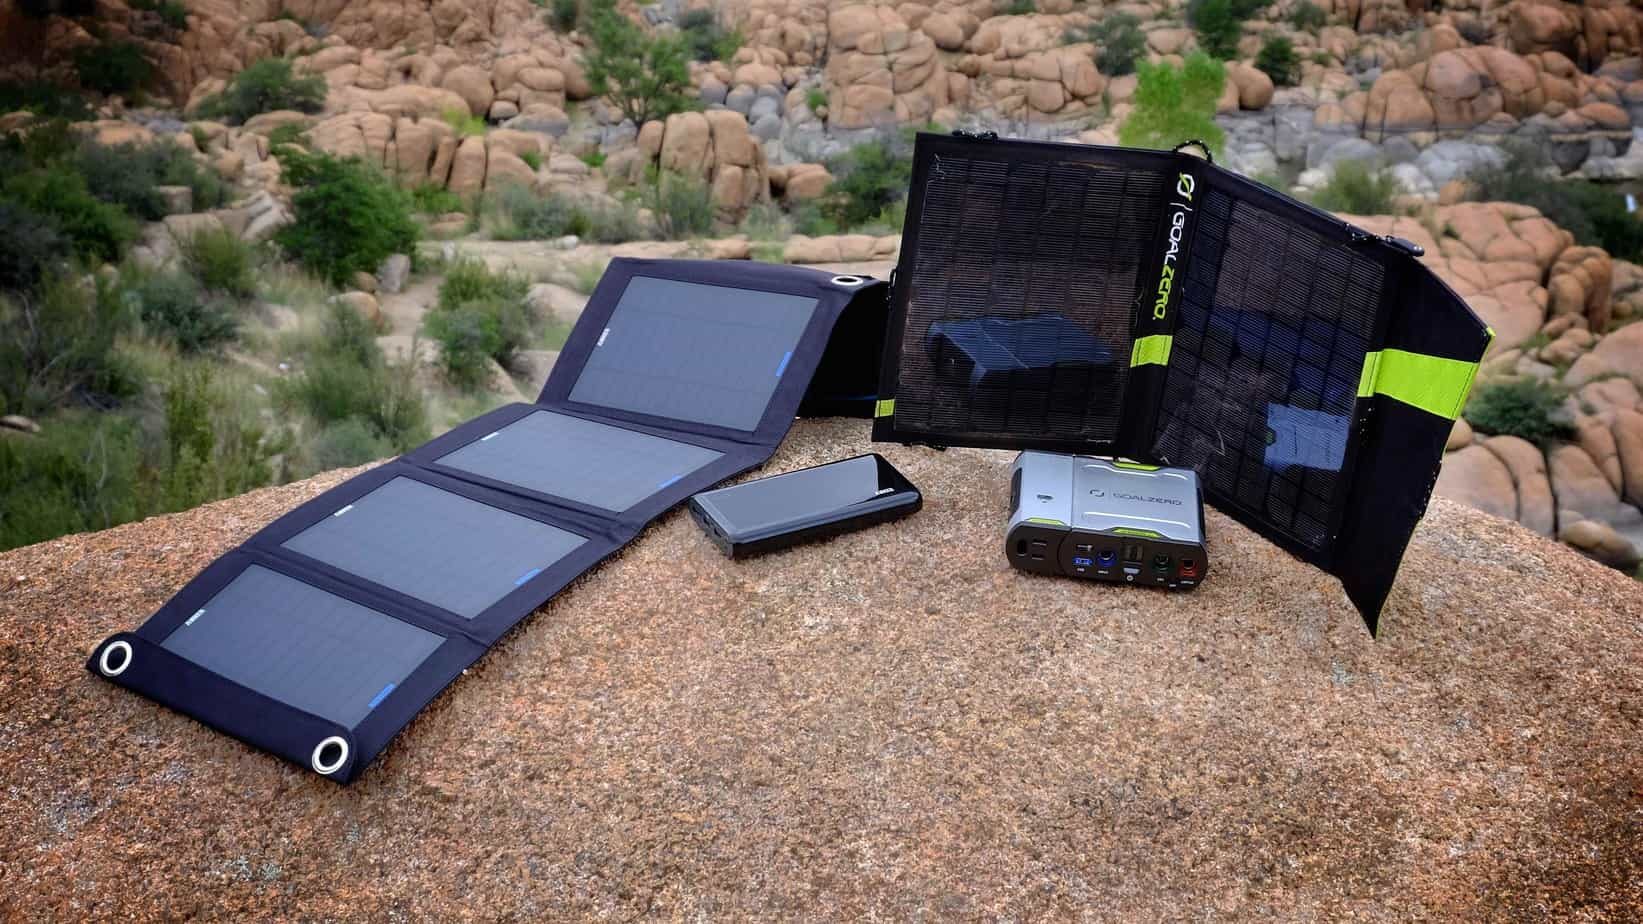 Head to Head: Sherpa 50 Solar Kit vs. Anker E7 14W Solar Charger